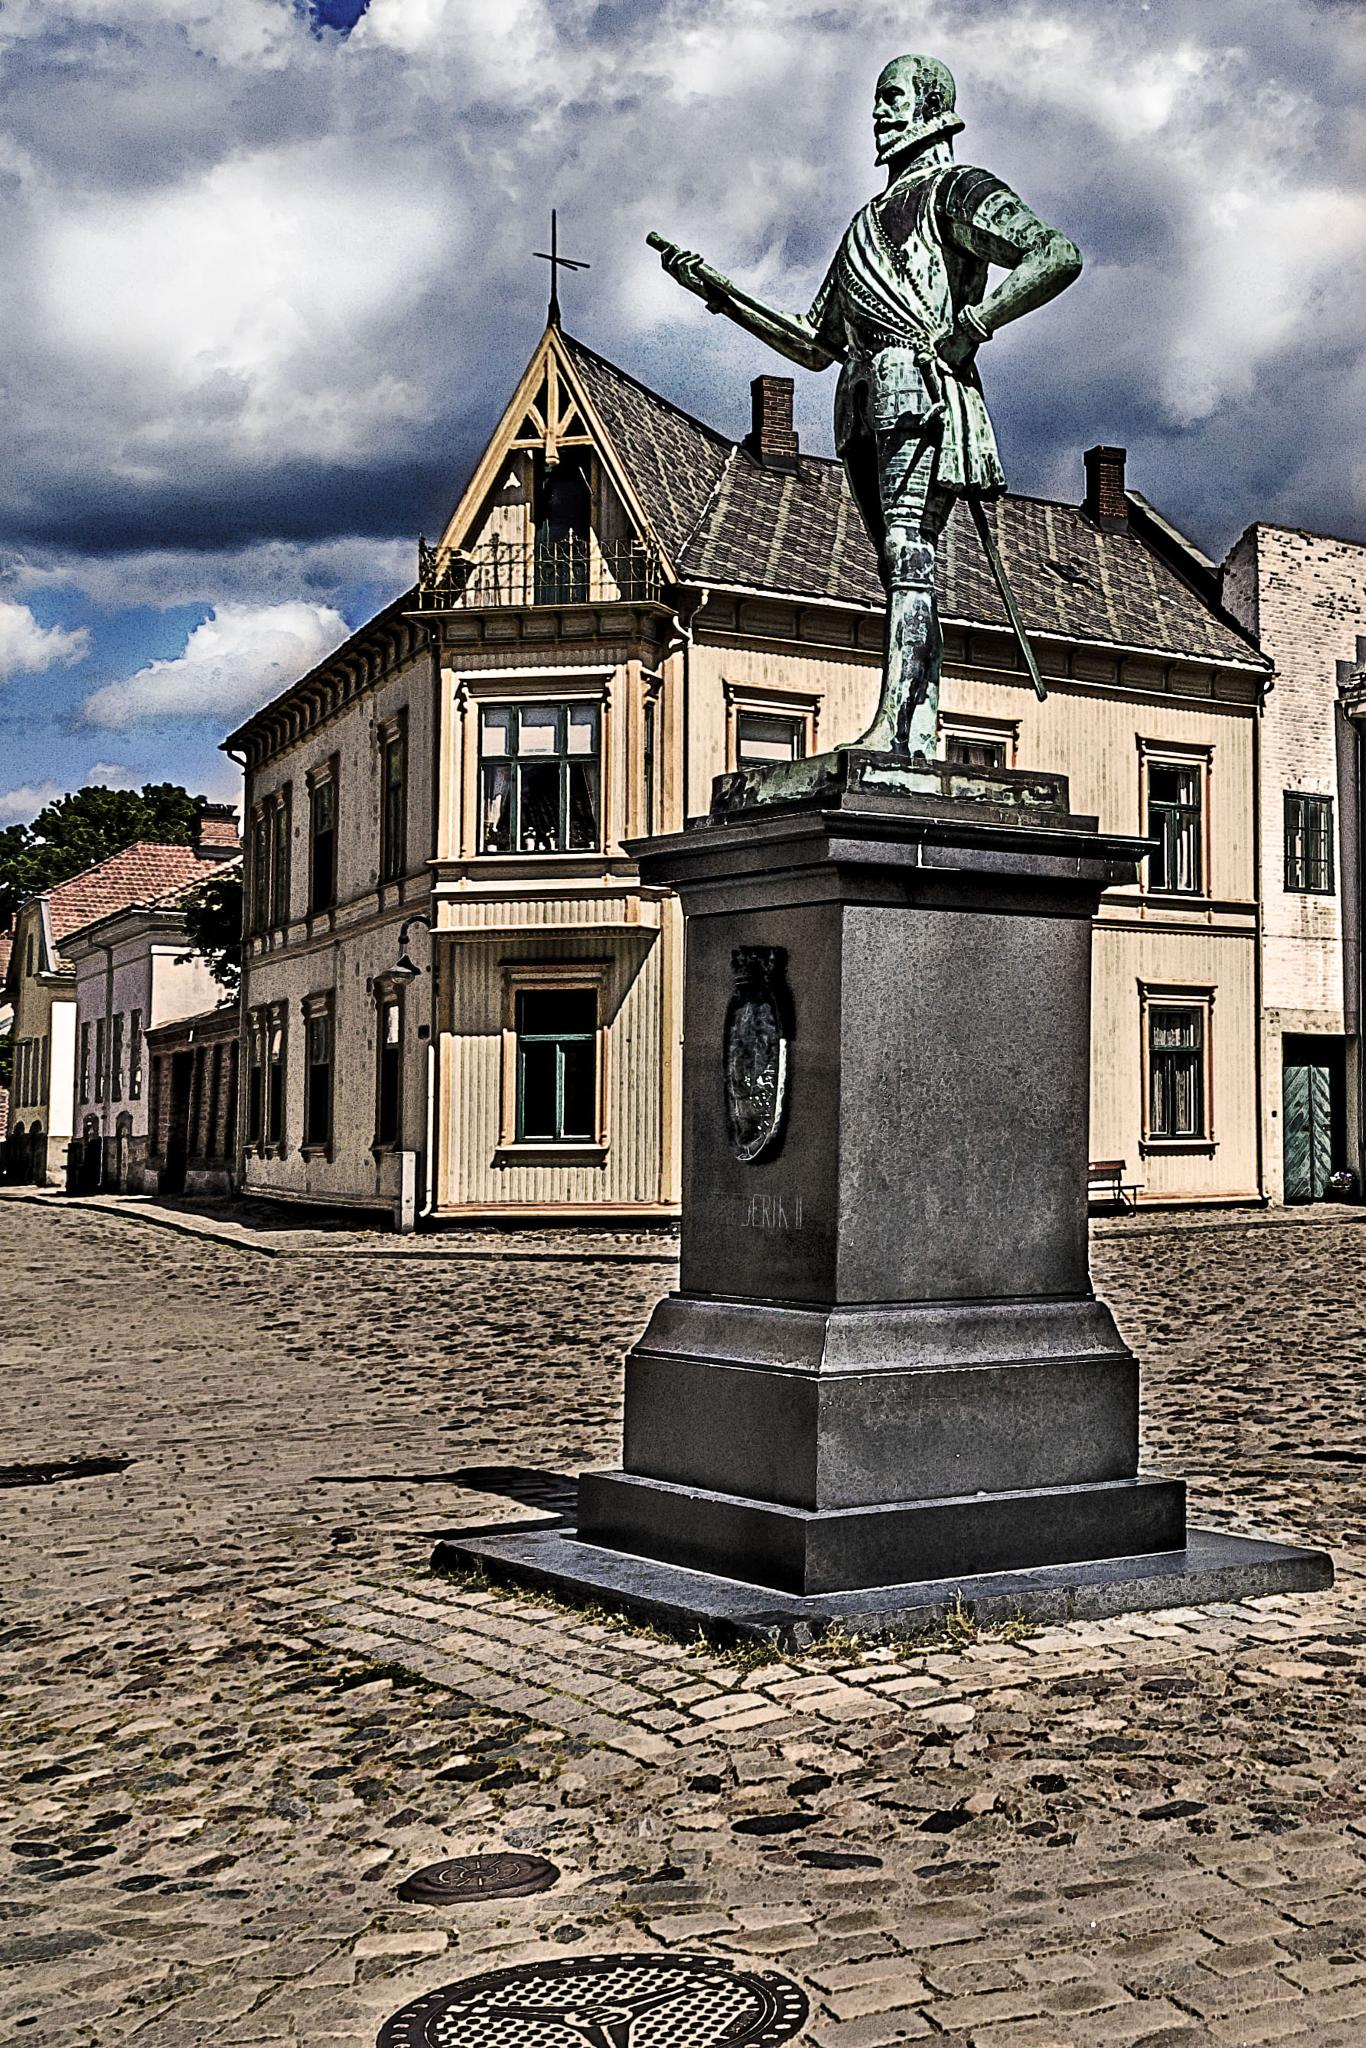 Old town square by kenneth.andersen.5245